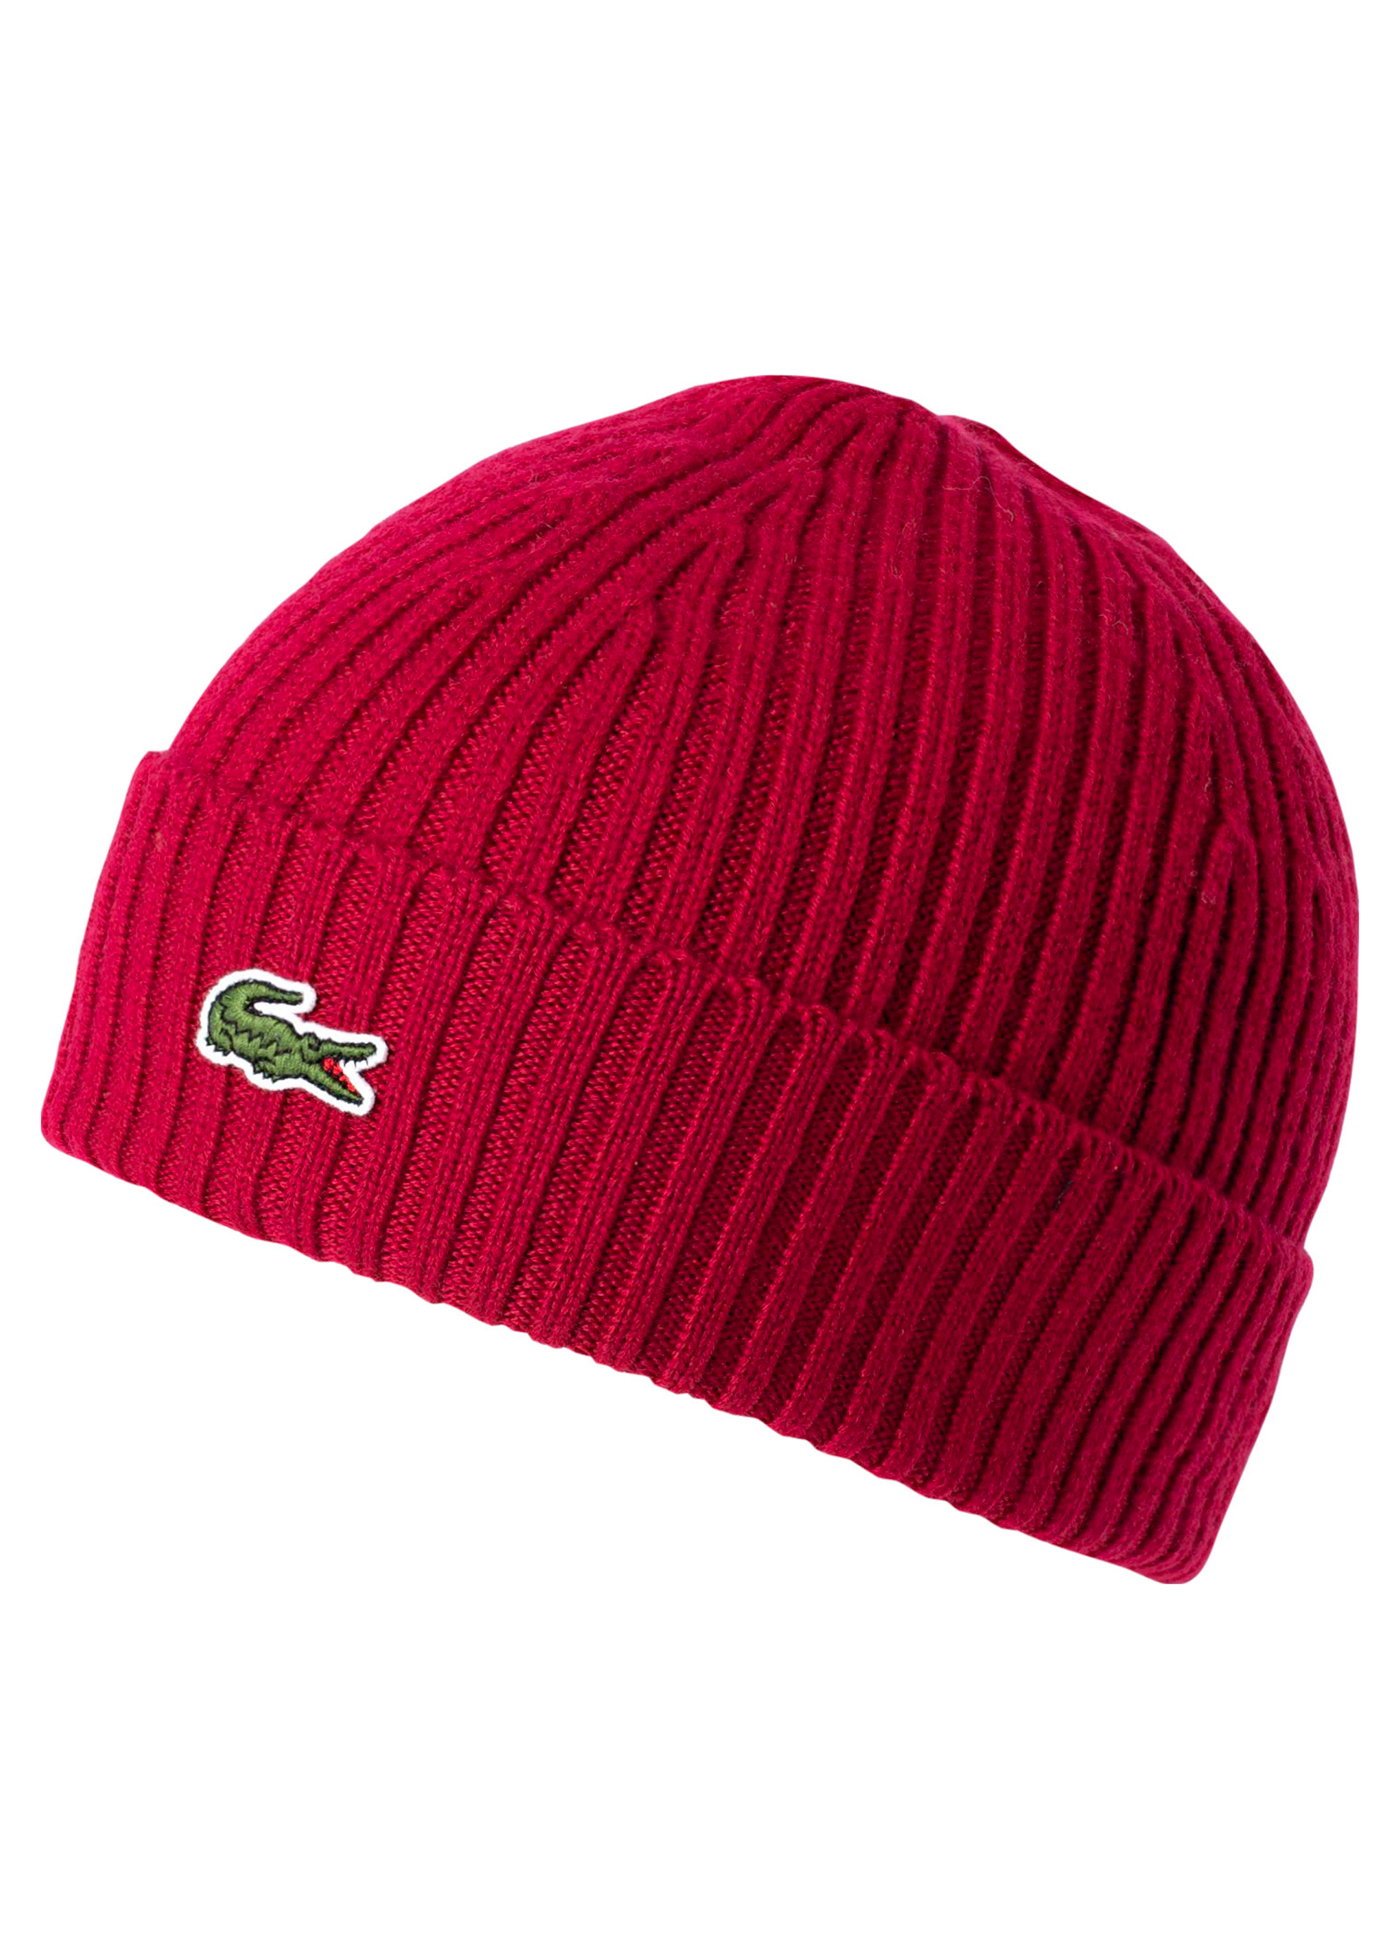 Knitted Cap image number 0